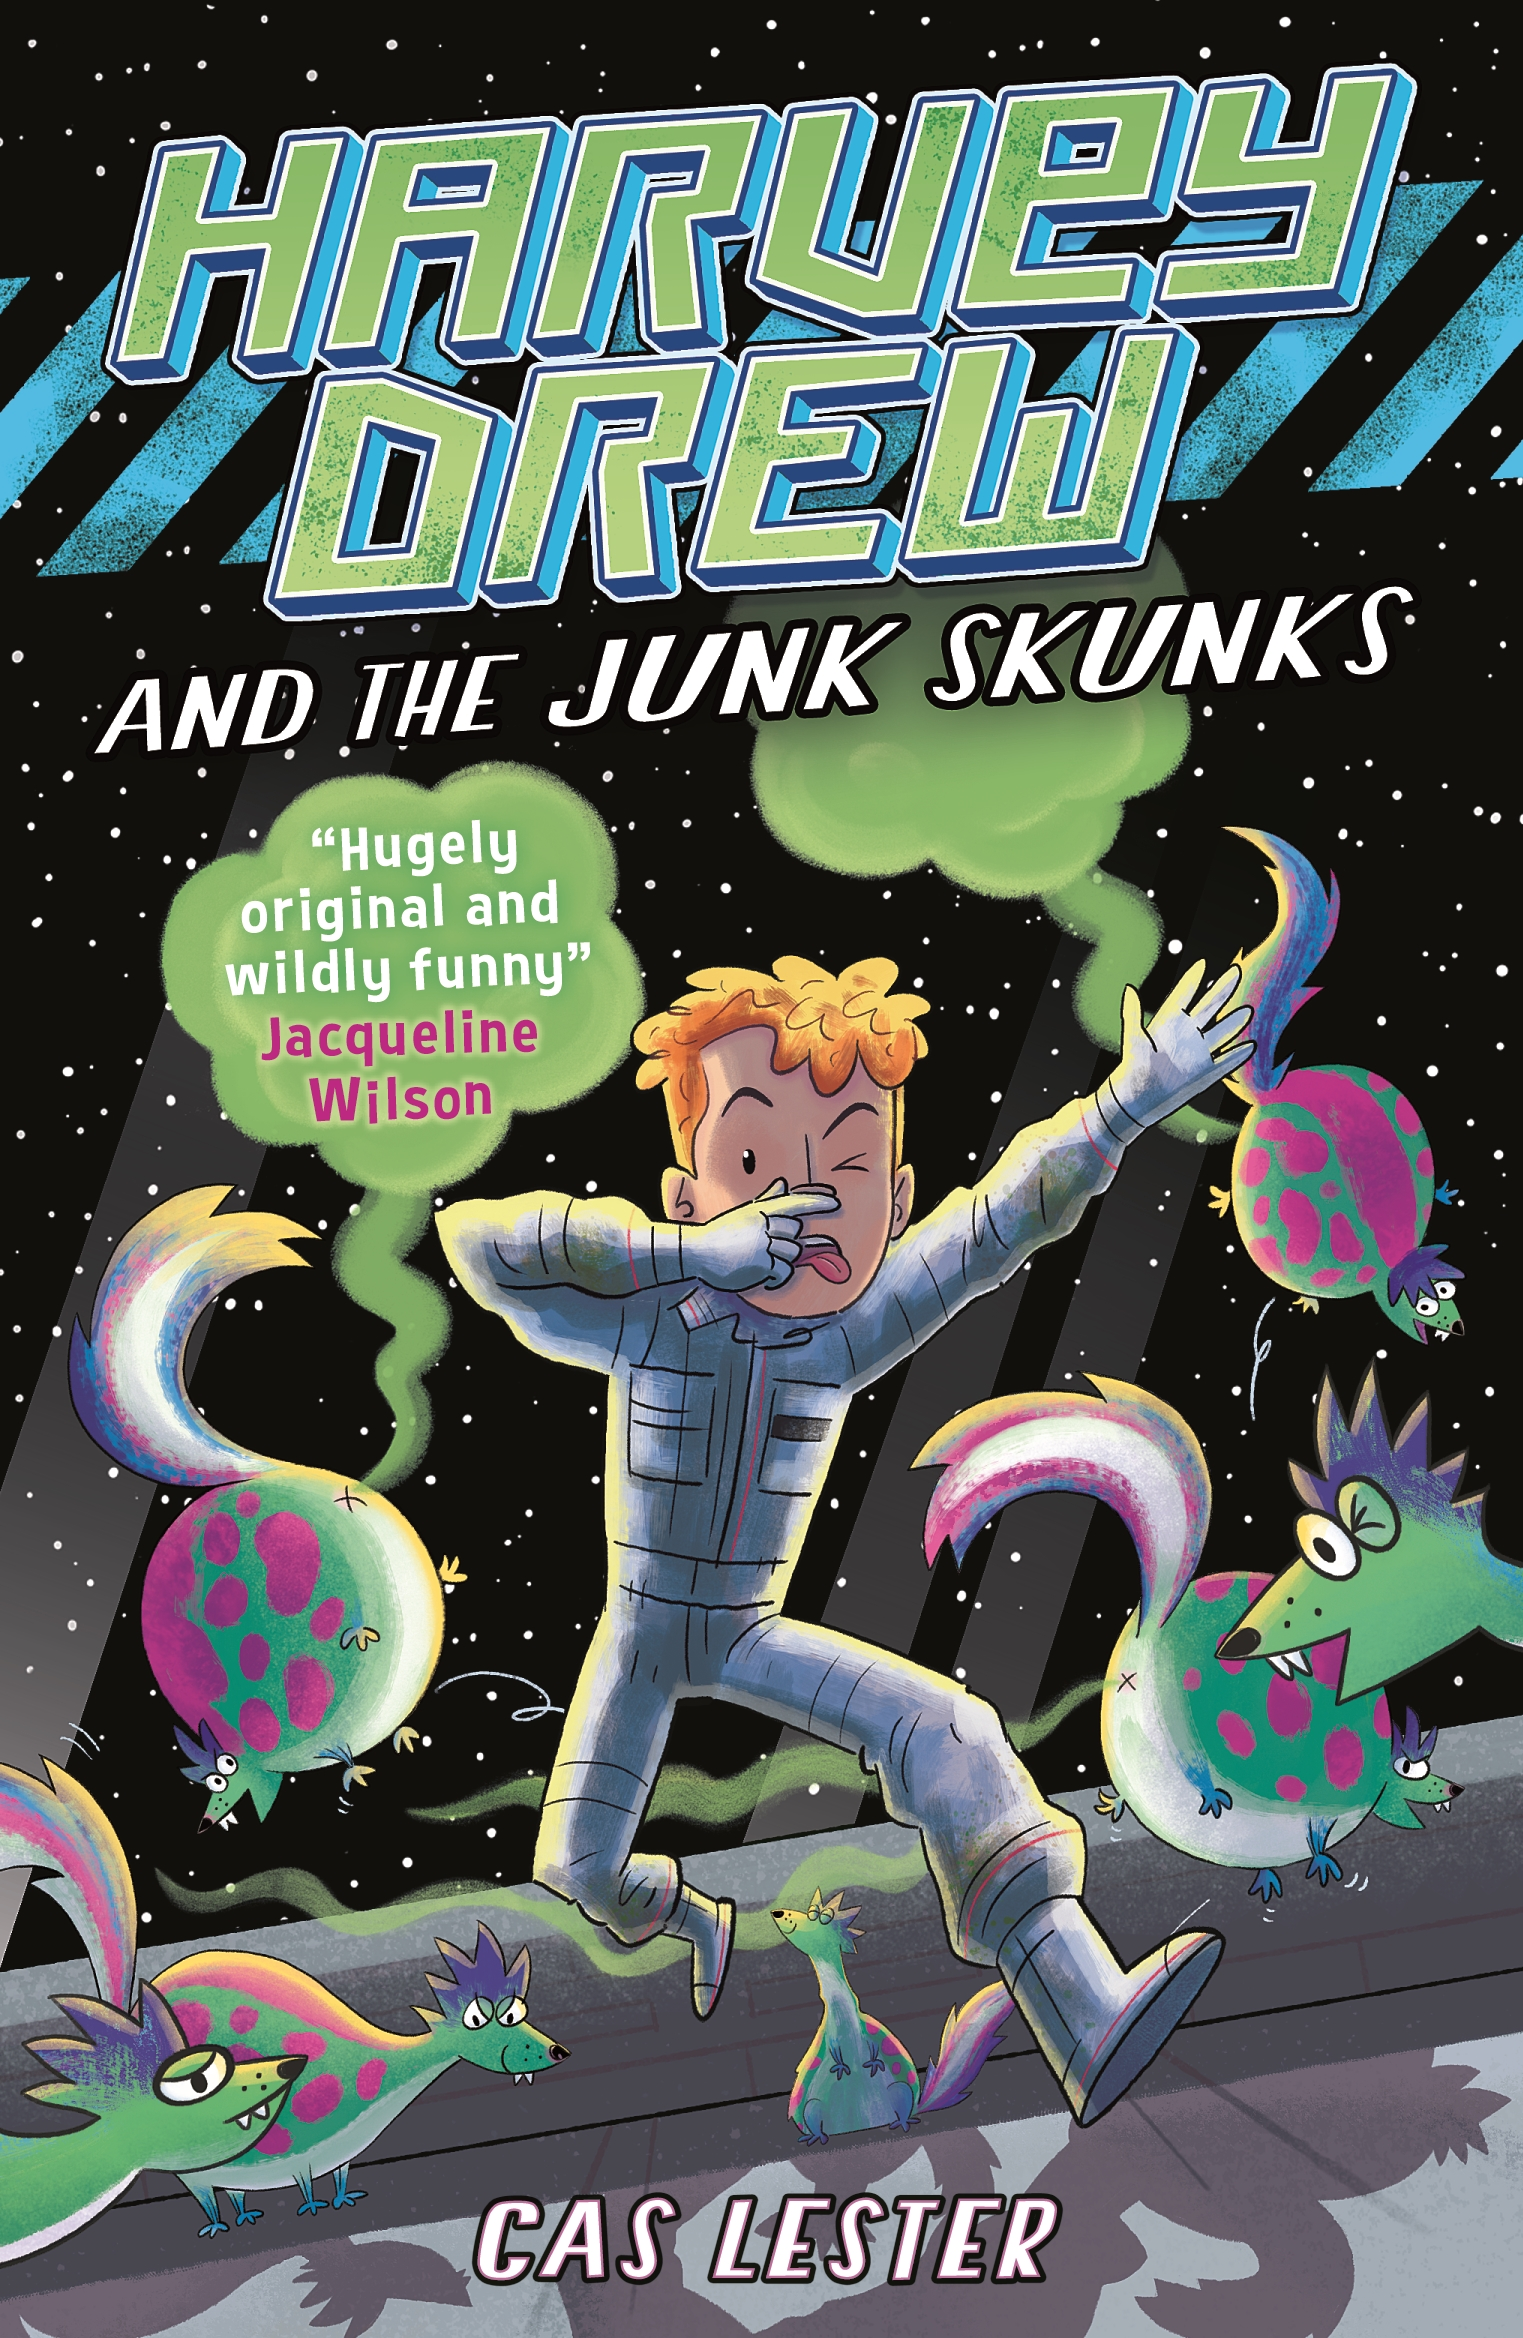 Harvey Drew and the Junk Skunks by Cas Lester